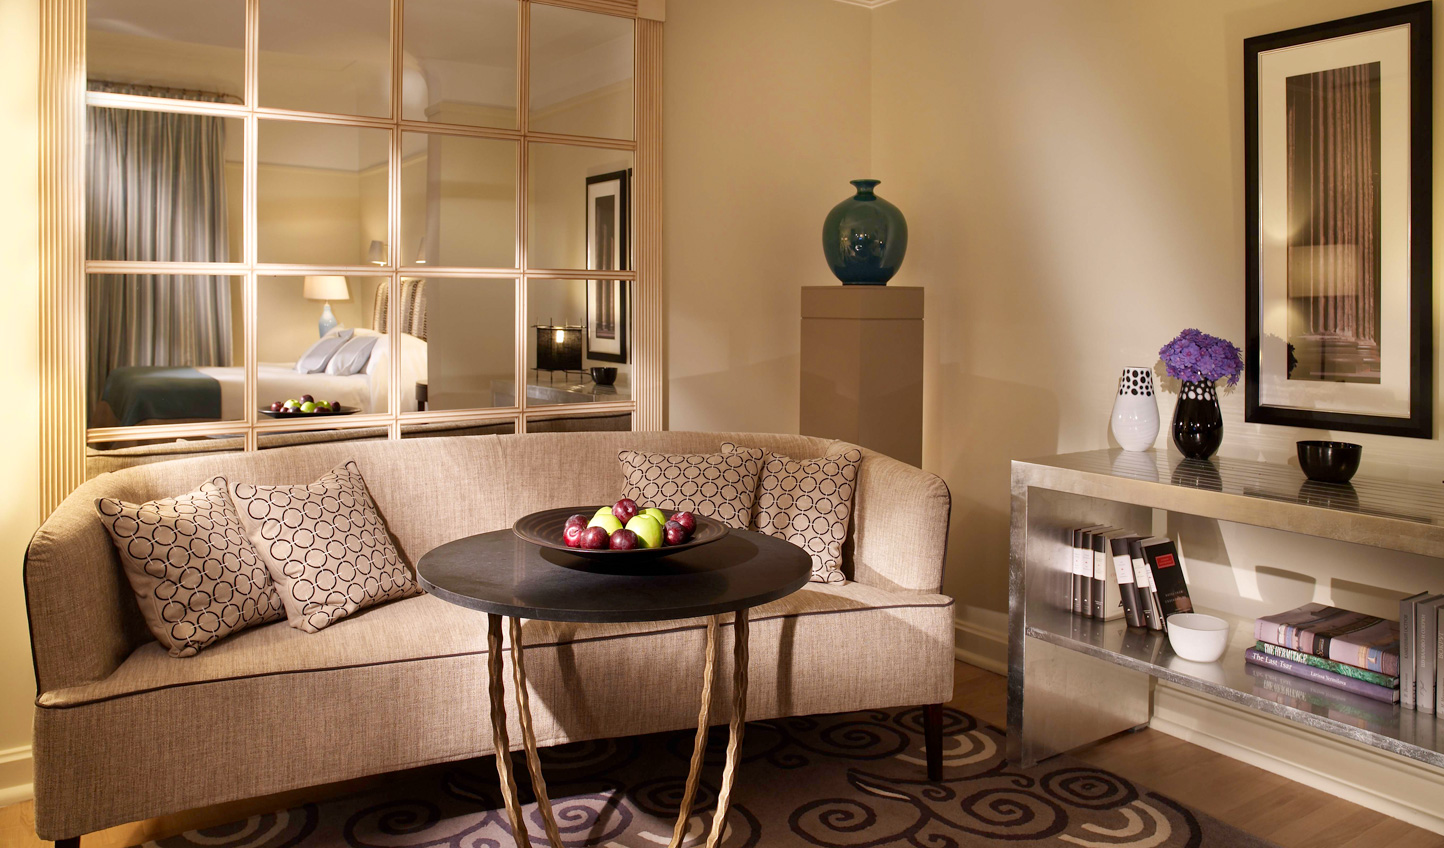 Contemporary design brings modern luxury to the suites